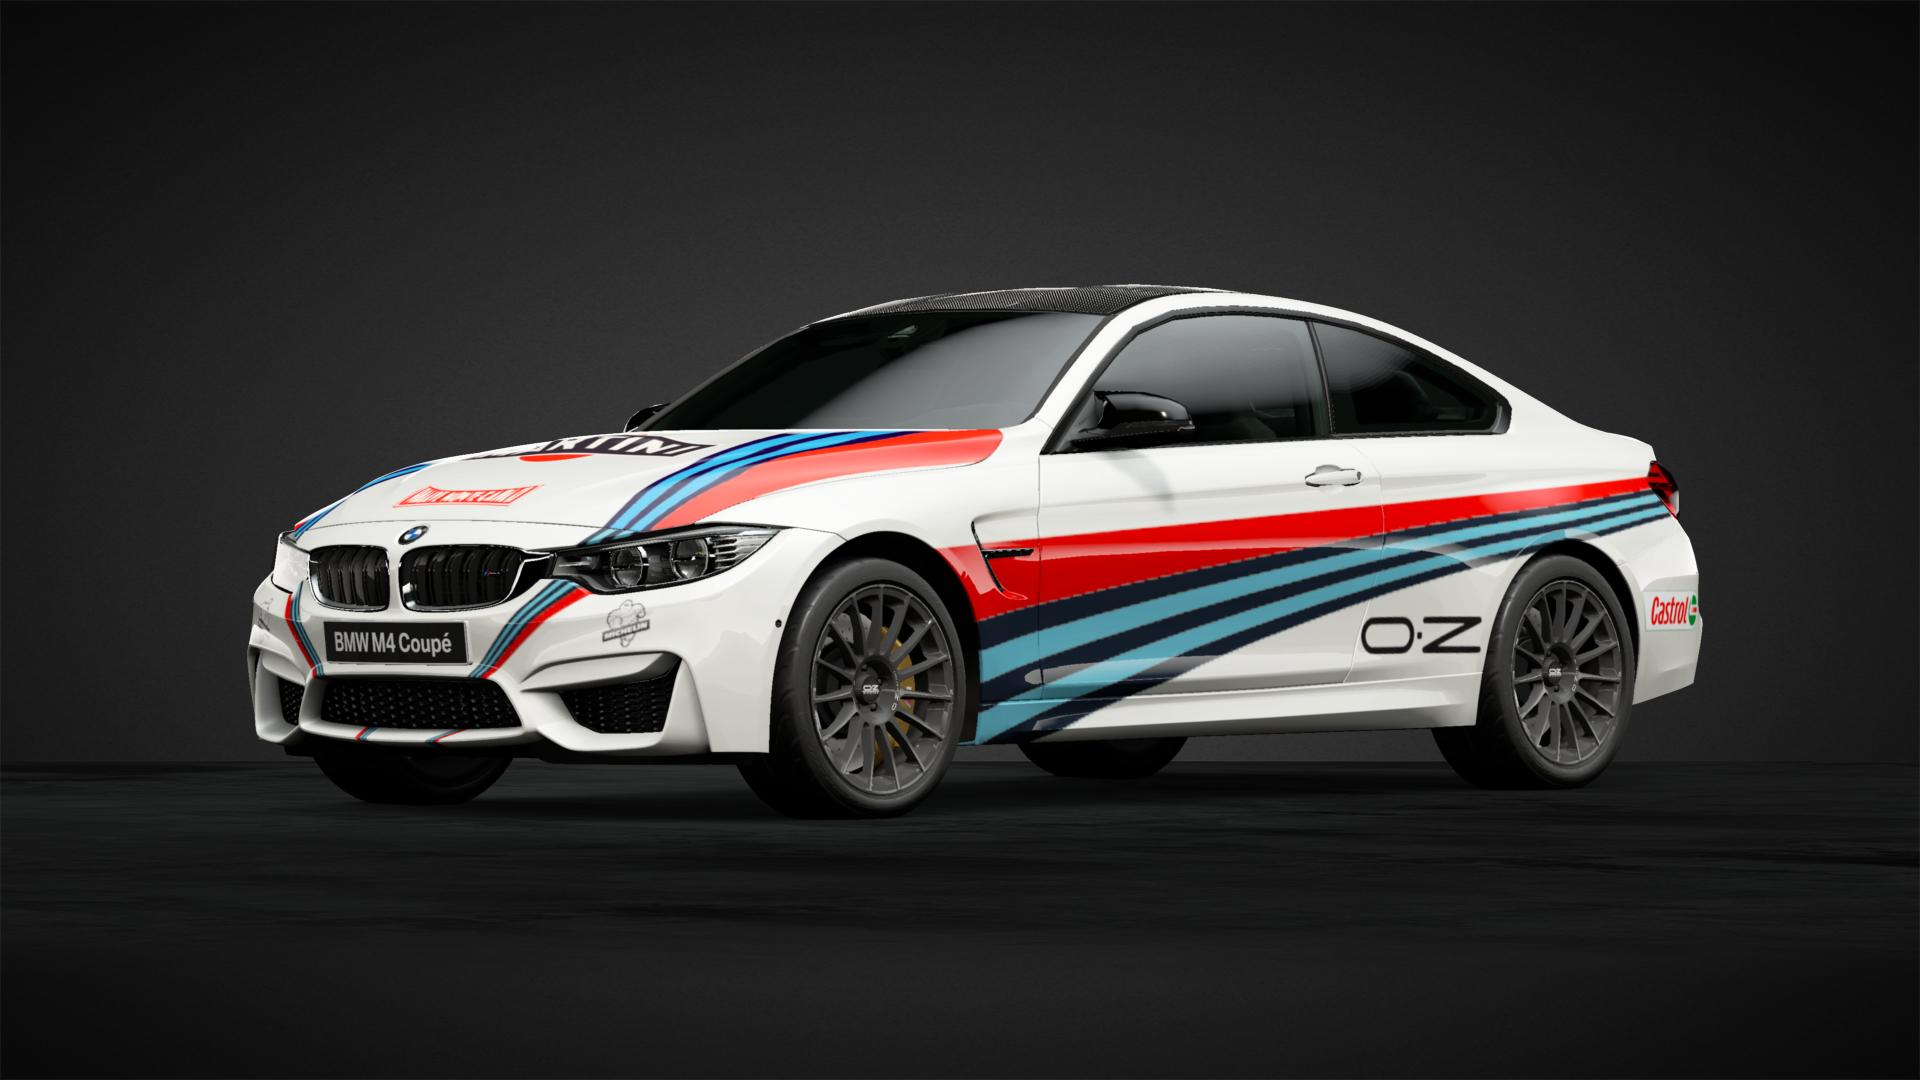 Bmw M4 Coupe Car Livery By Mistermadinina97 Community Gran